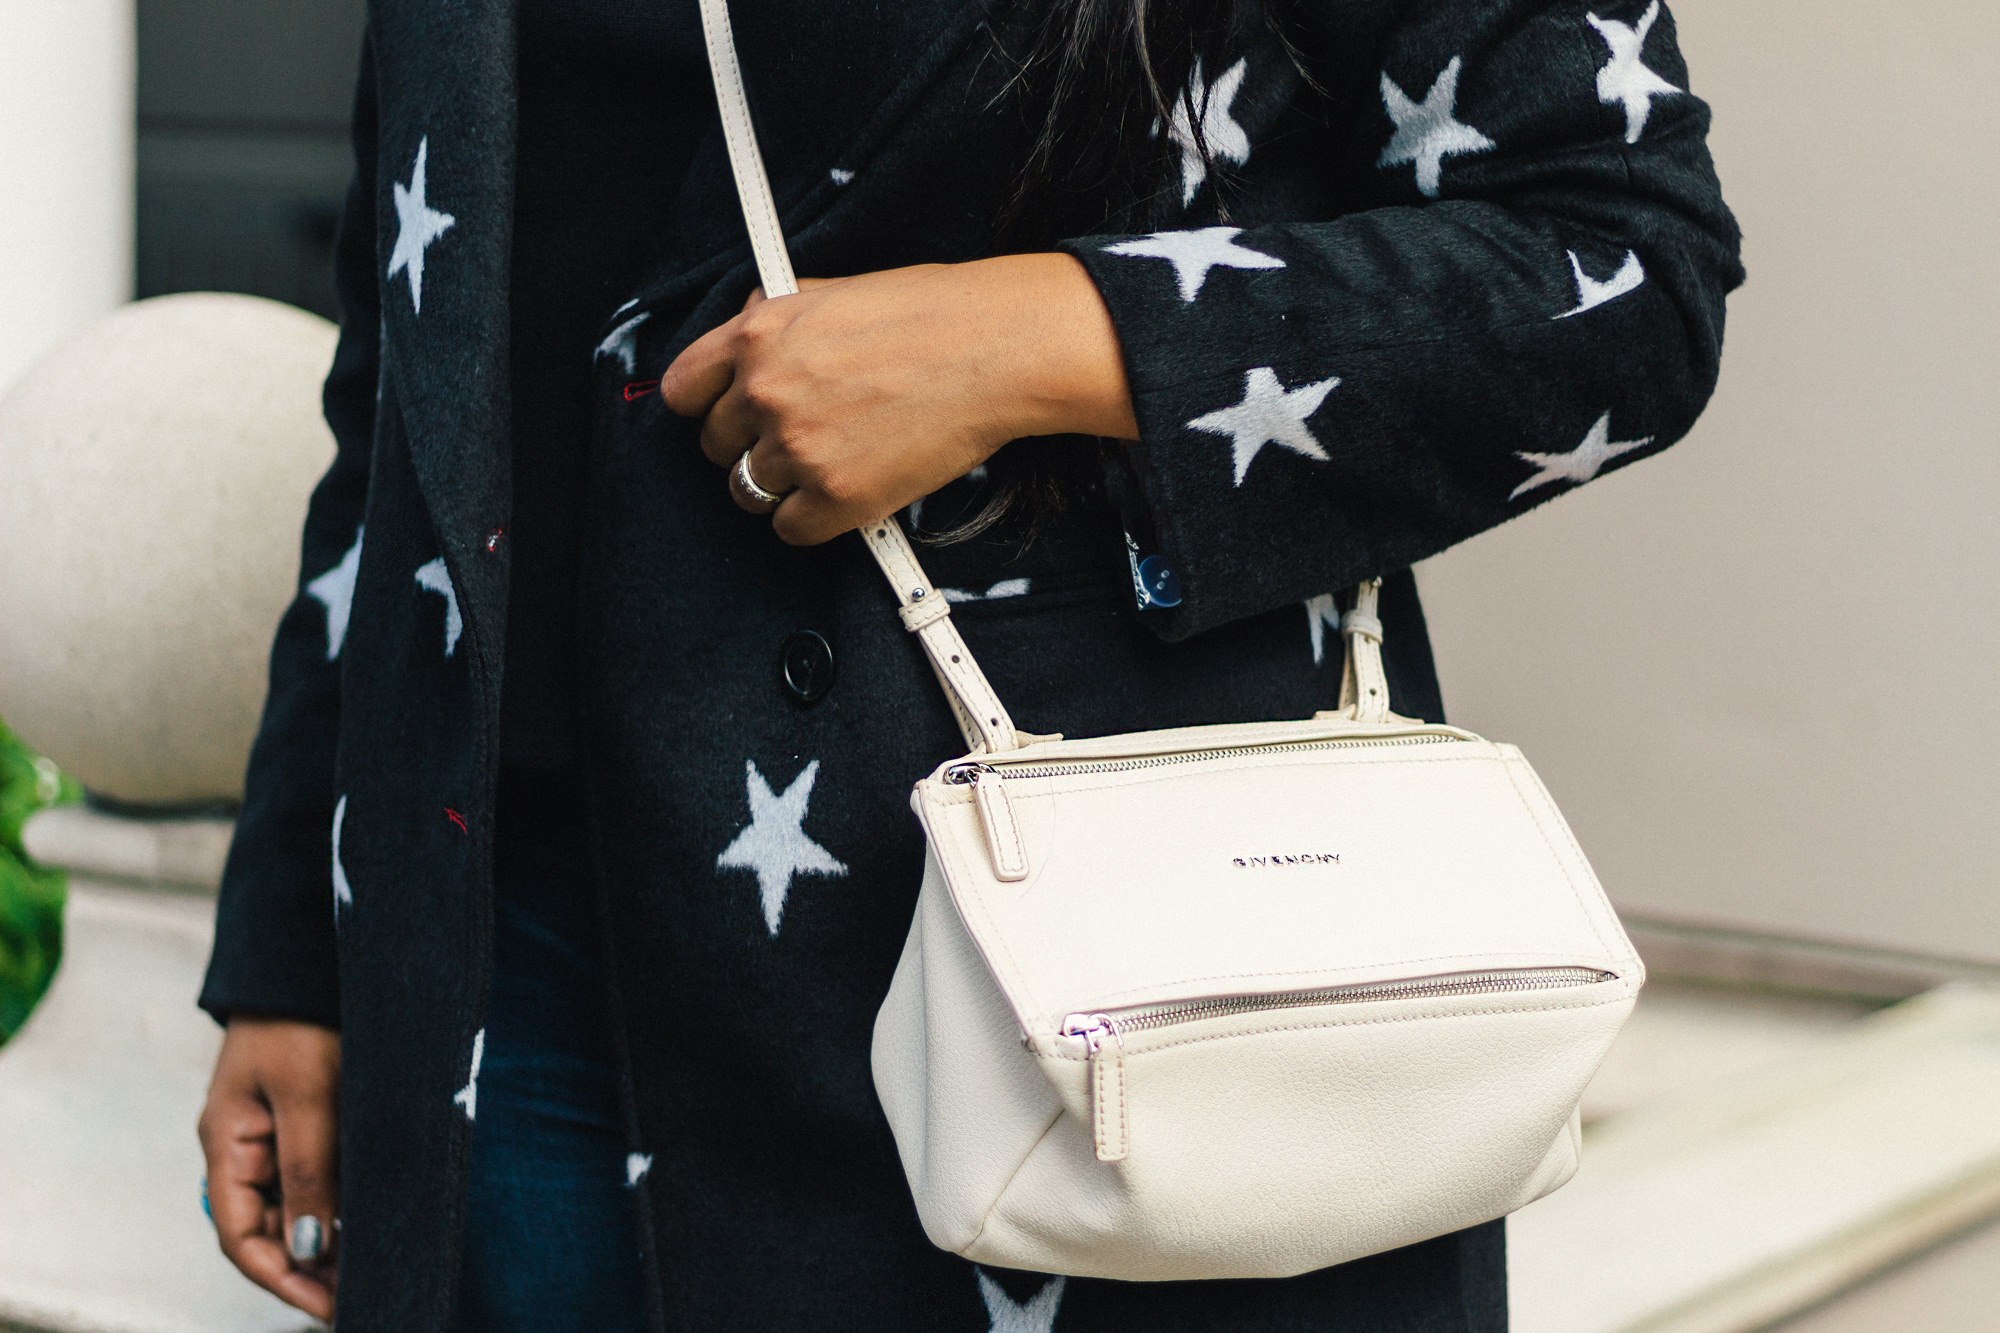 givenchy-cream-crossbody-bag